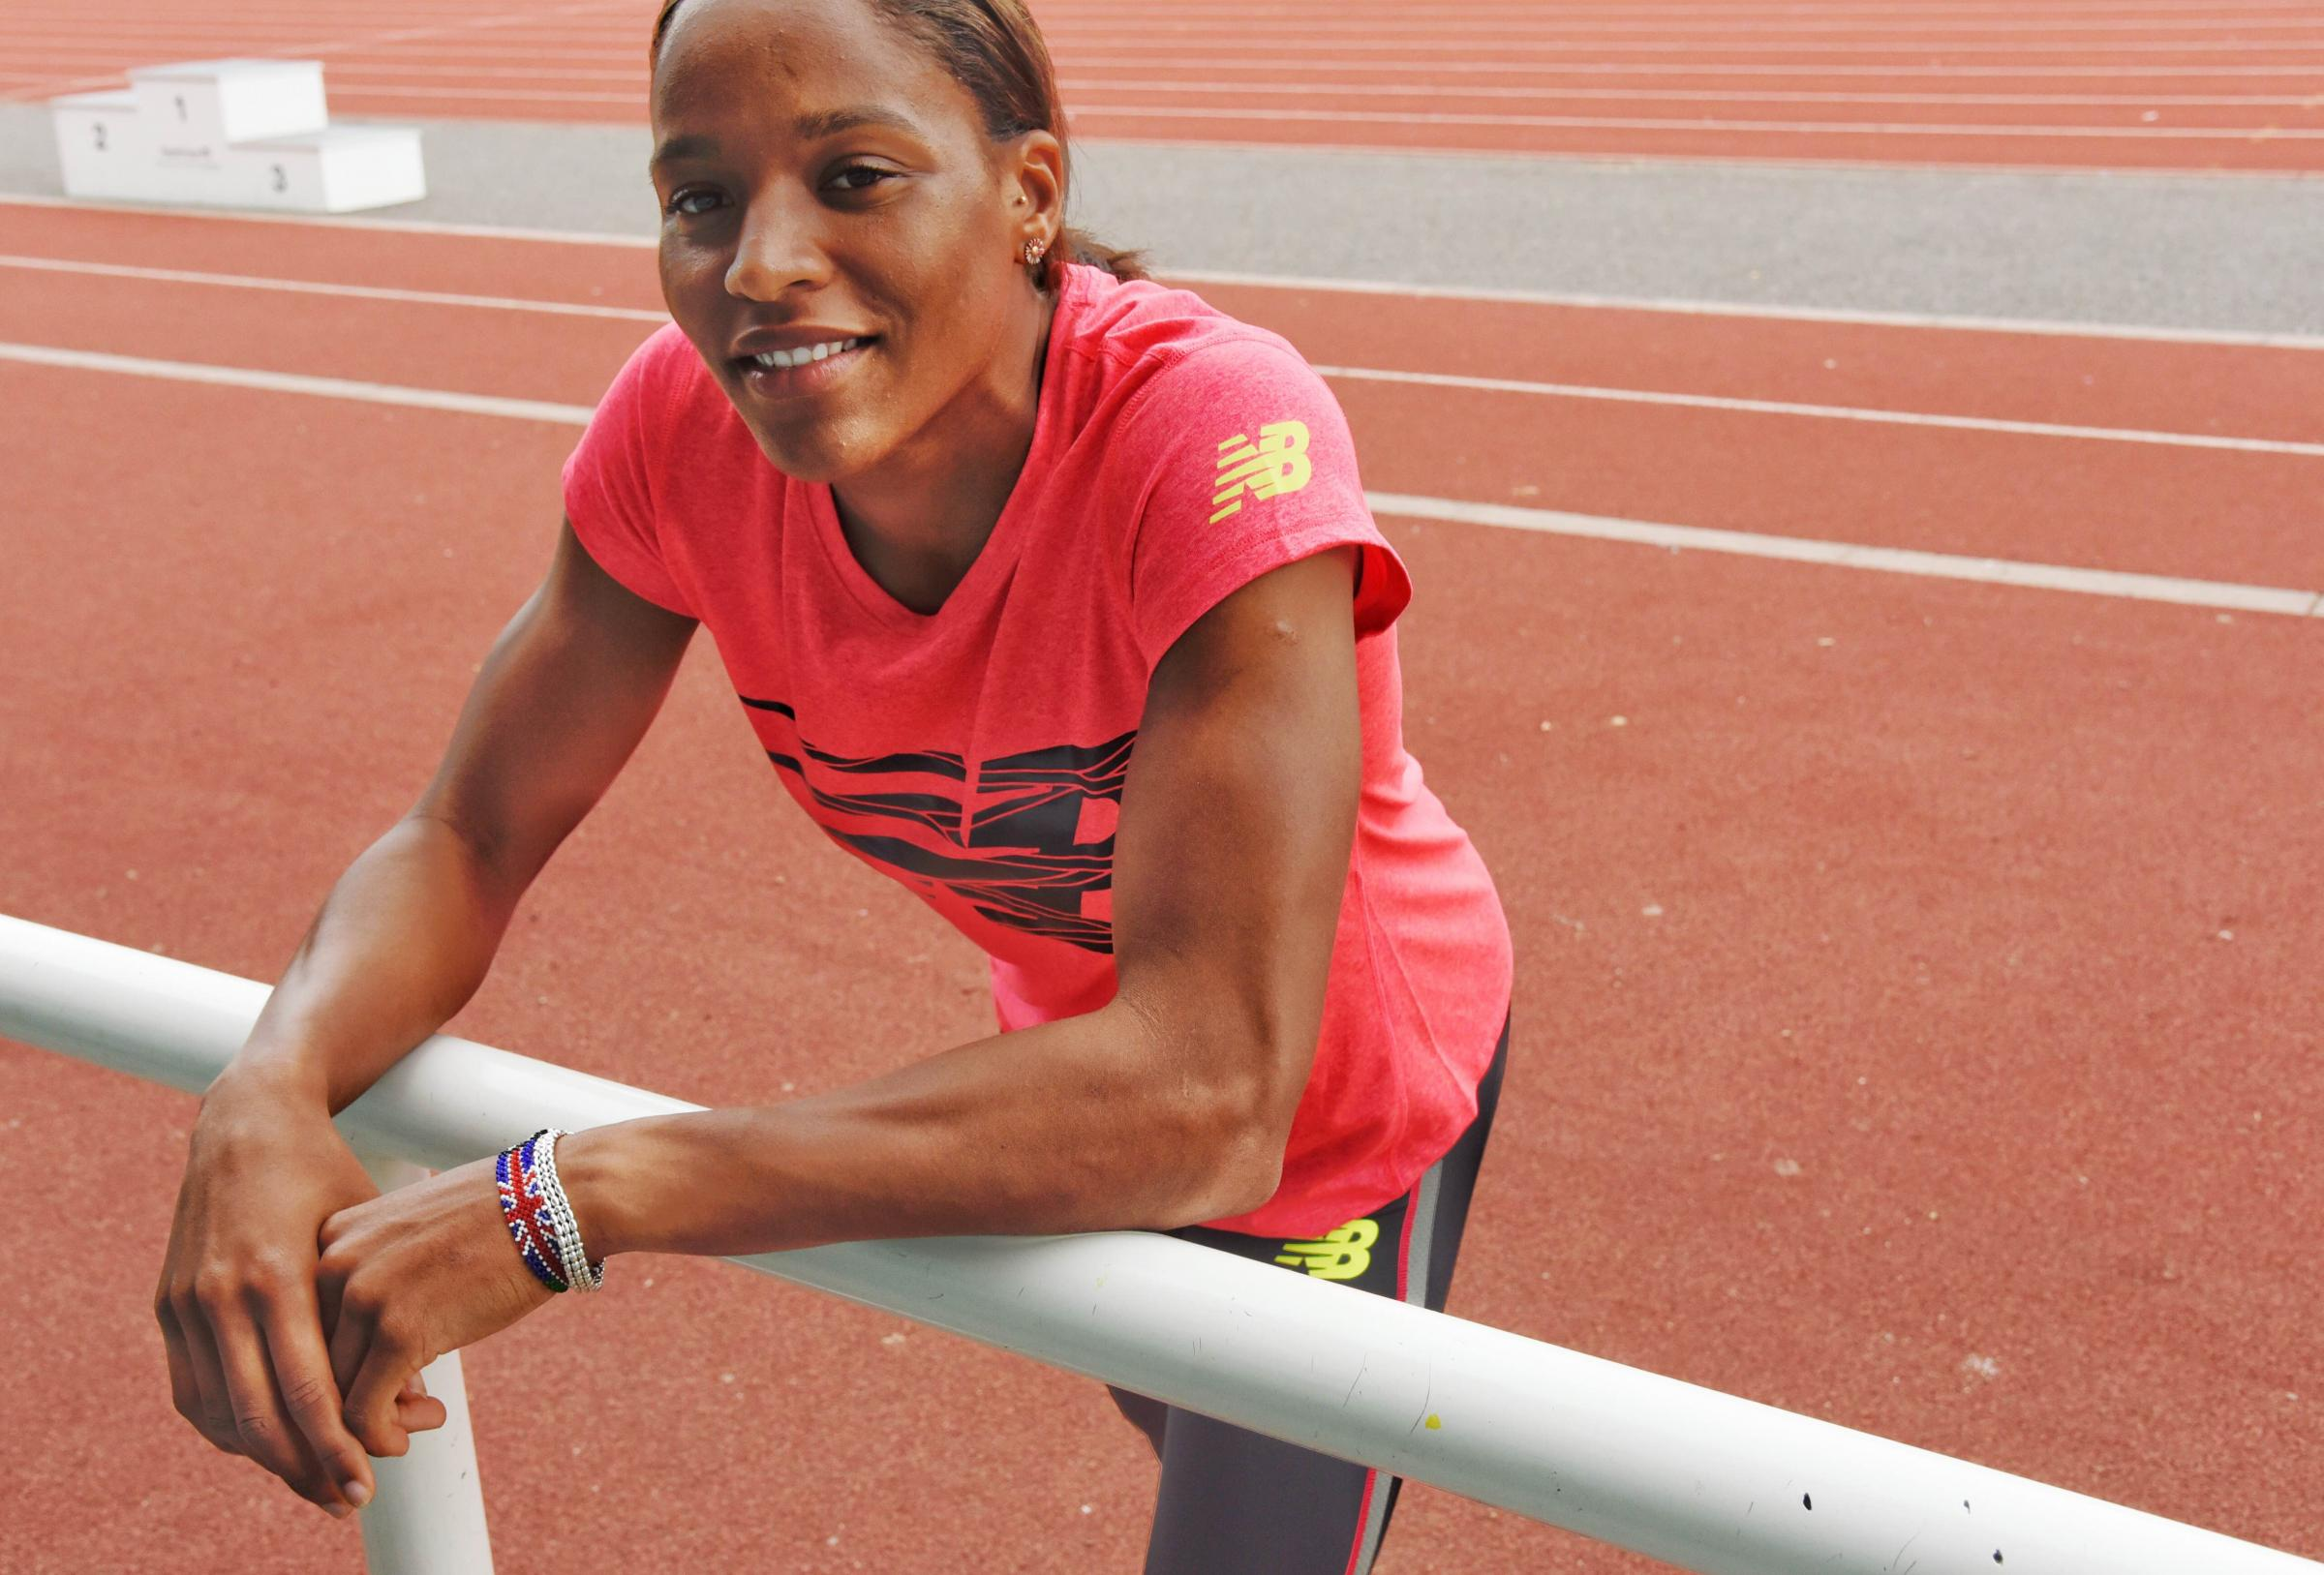 WSEH Athletics Club star Shelayna Oskan-Clarke narrowly missed out on the 800m European Indoor Championships title in Belgrade, finishing second to Selina Buchel.